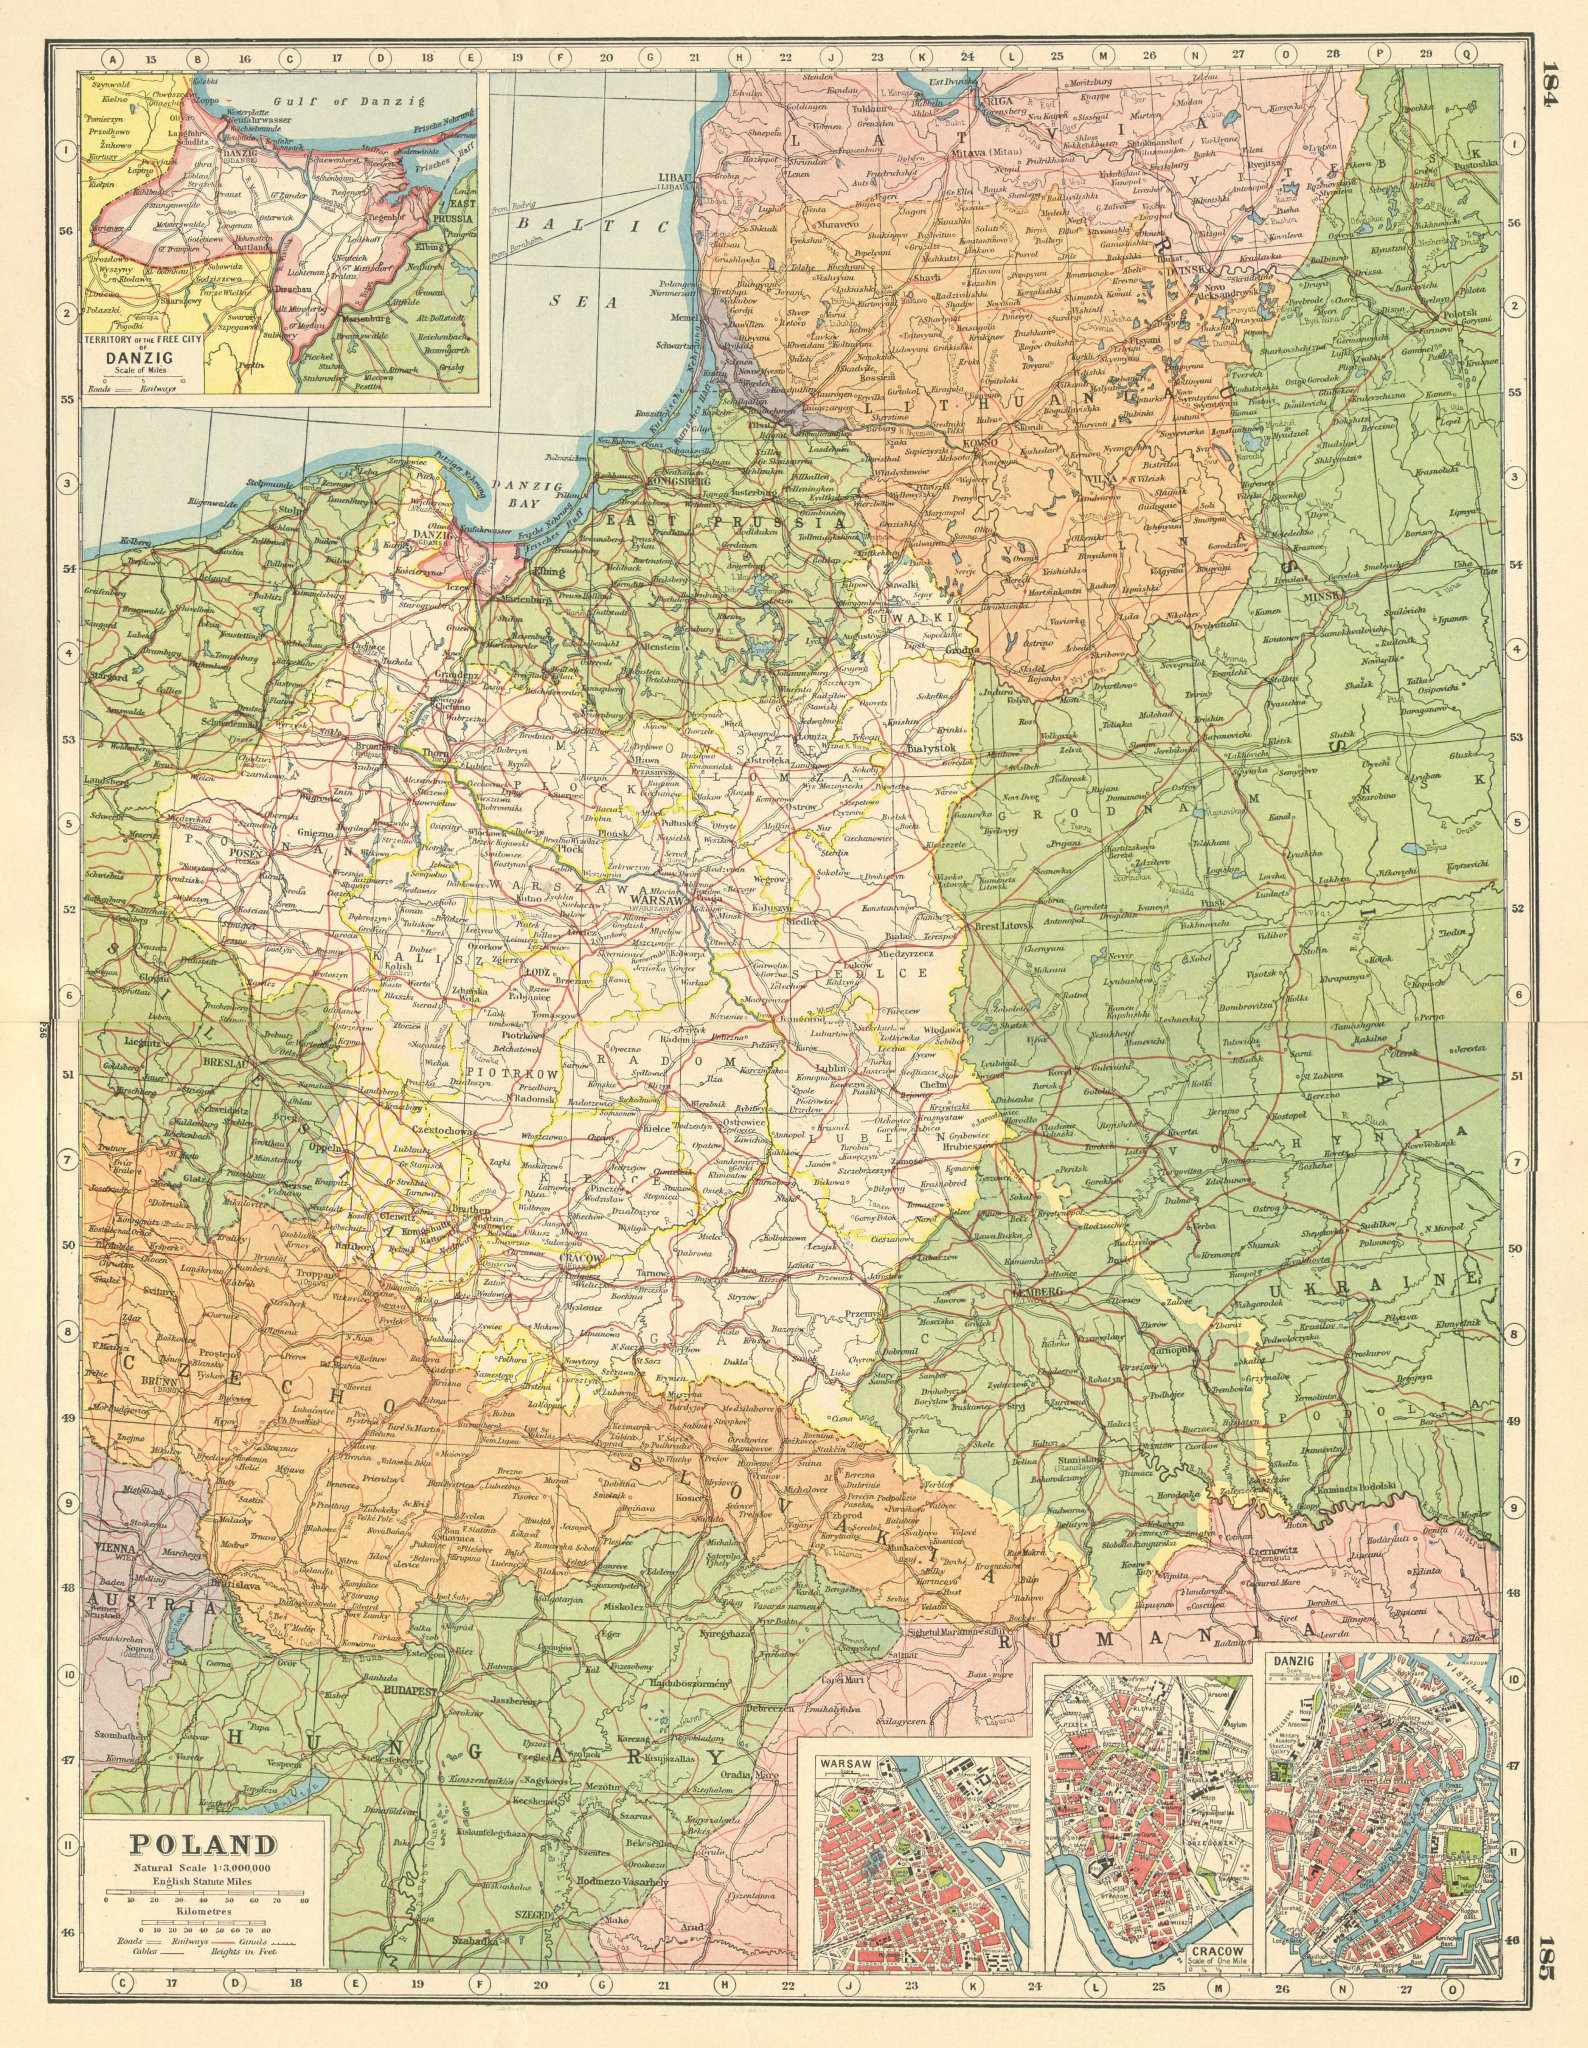 Associate Product POLAND. inset plans of Danzig Gdansk Warsaw Kraków Cracow.East Prussia 1920 map